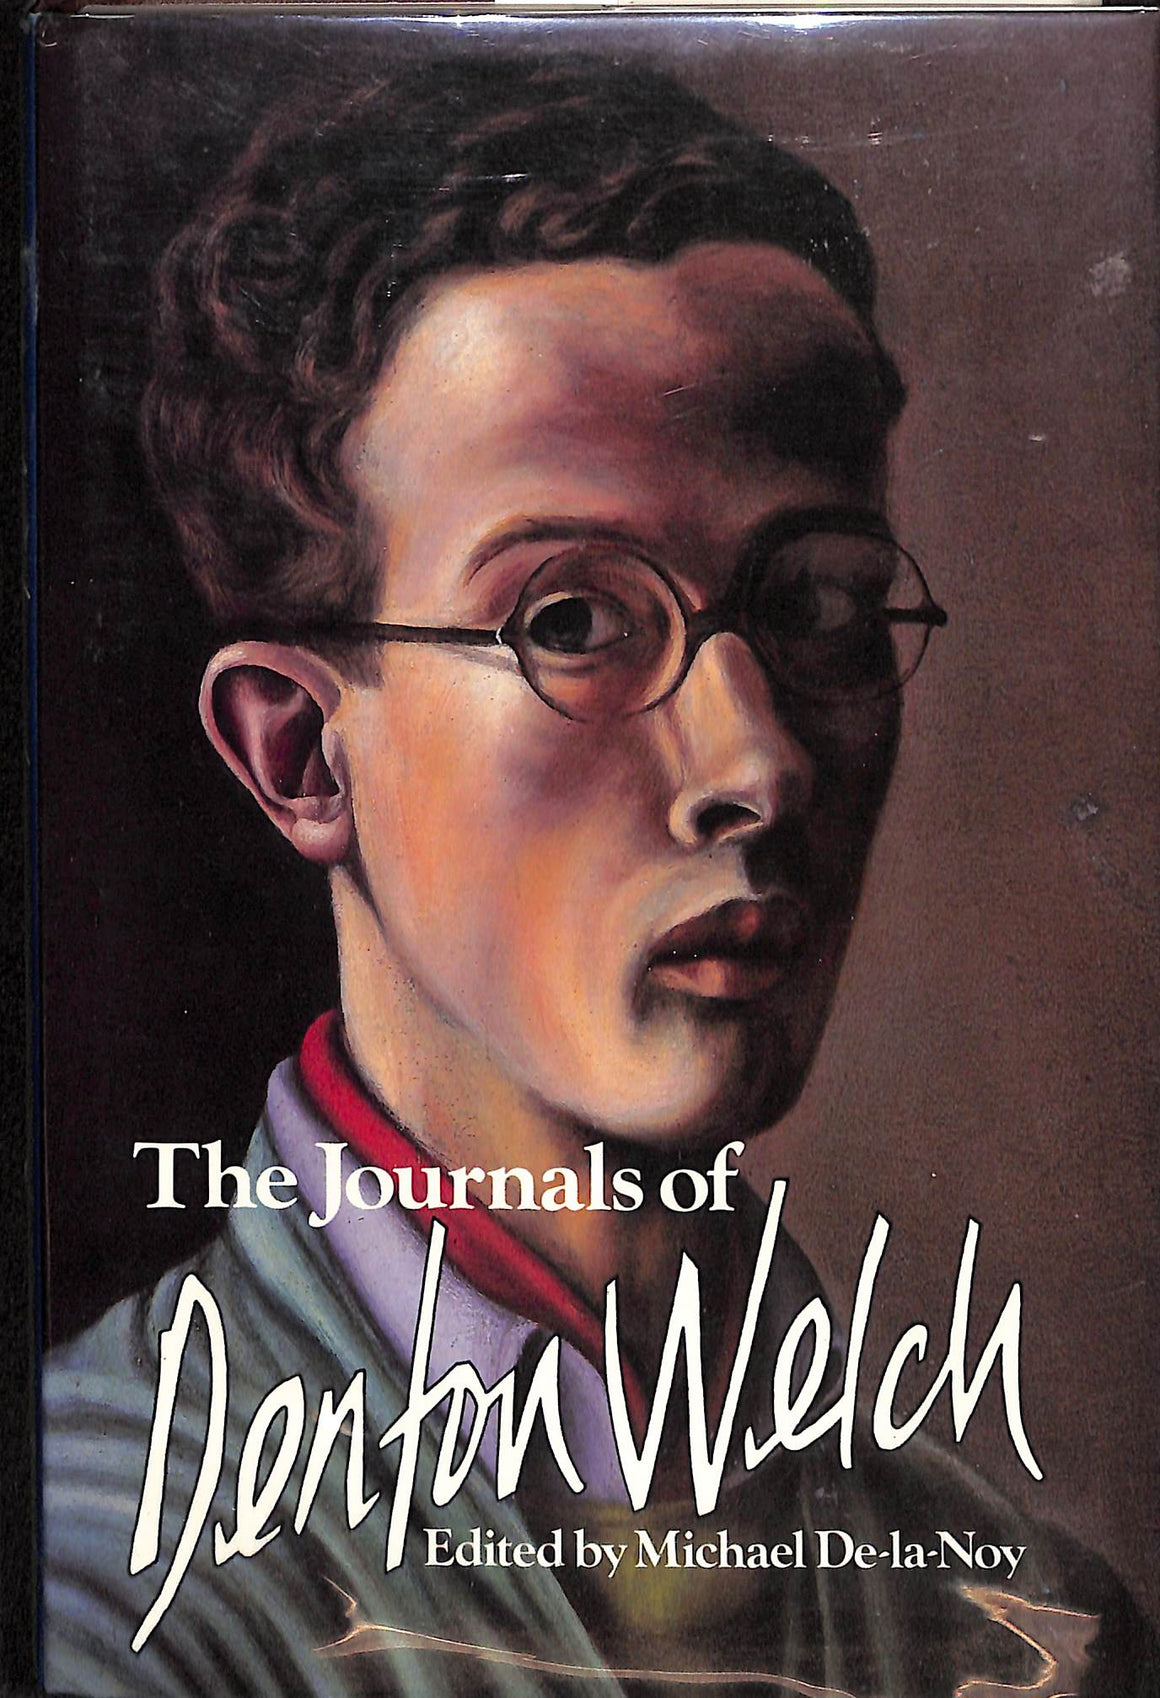 'The Journals of Denton Welch'